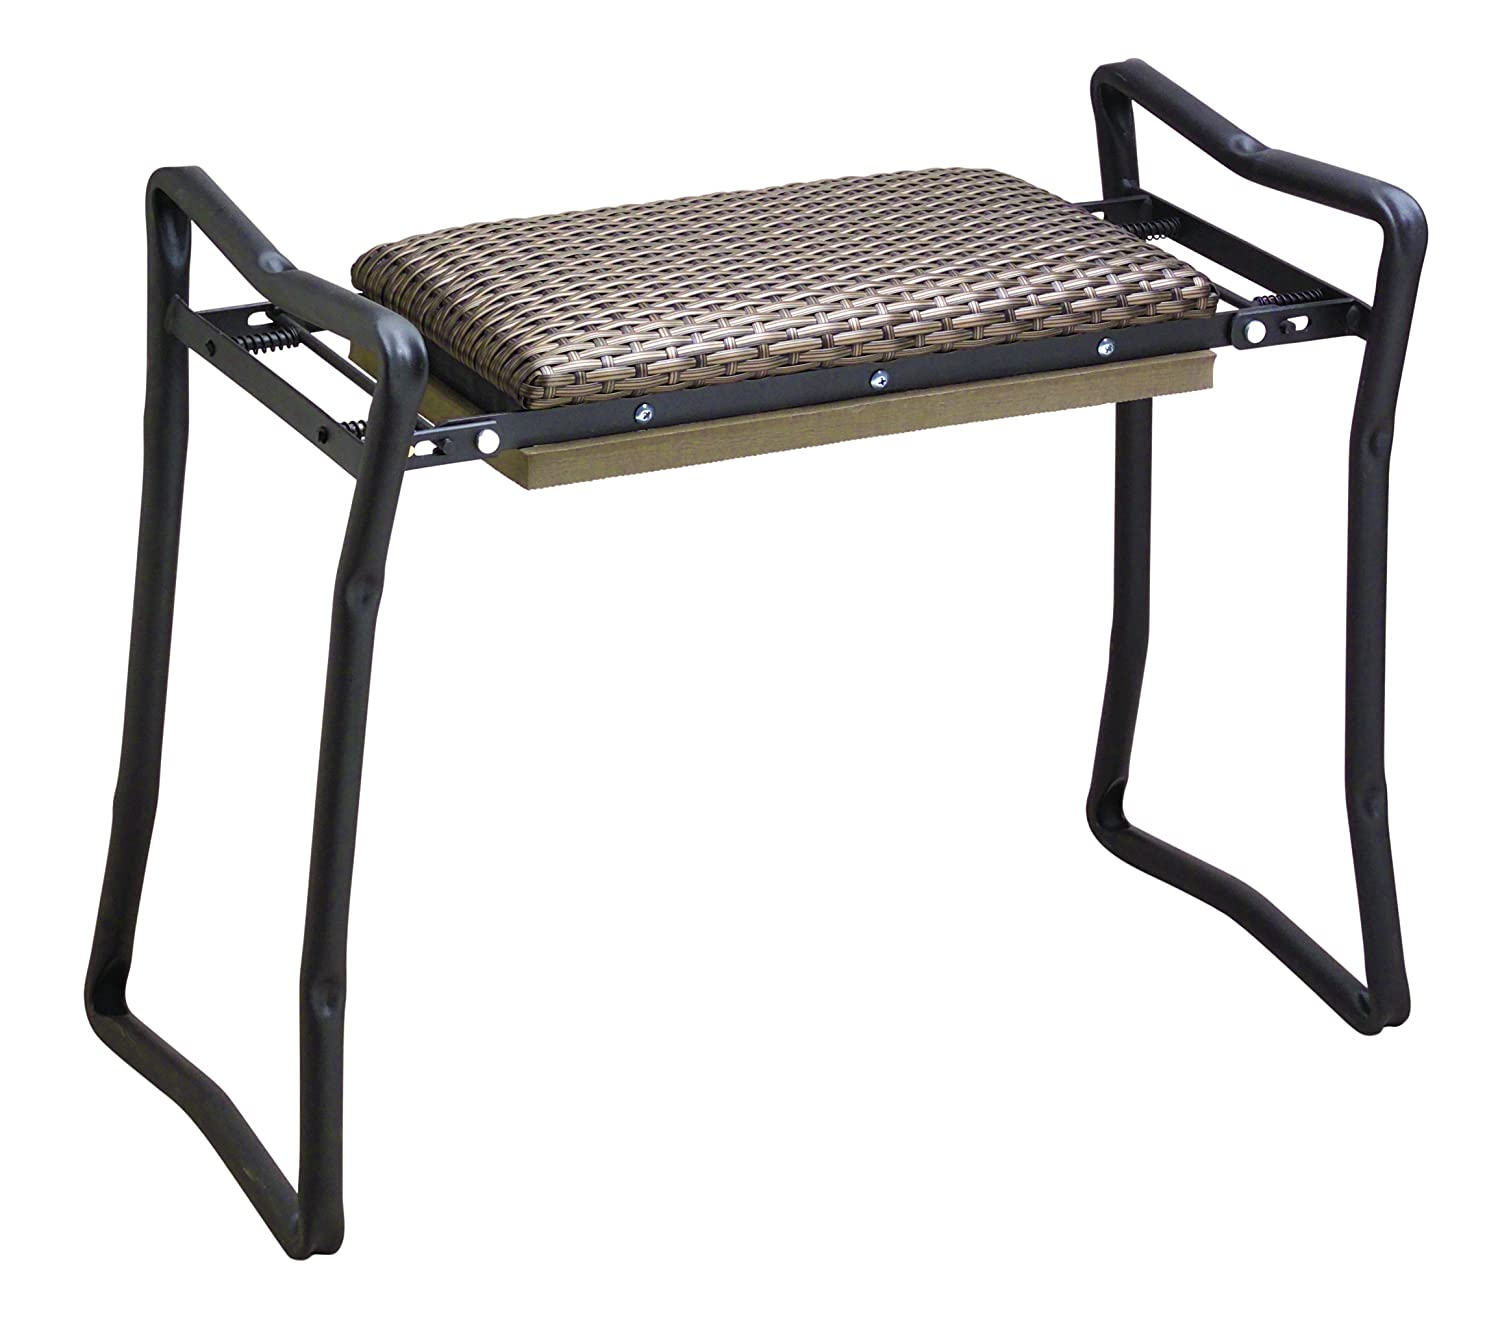 Amazon.com : Flexrake CLA103 Classic Wicker Kneeler Seat : Lawn And Garden  Hand Tools : Garden U0026 Outdoor